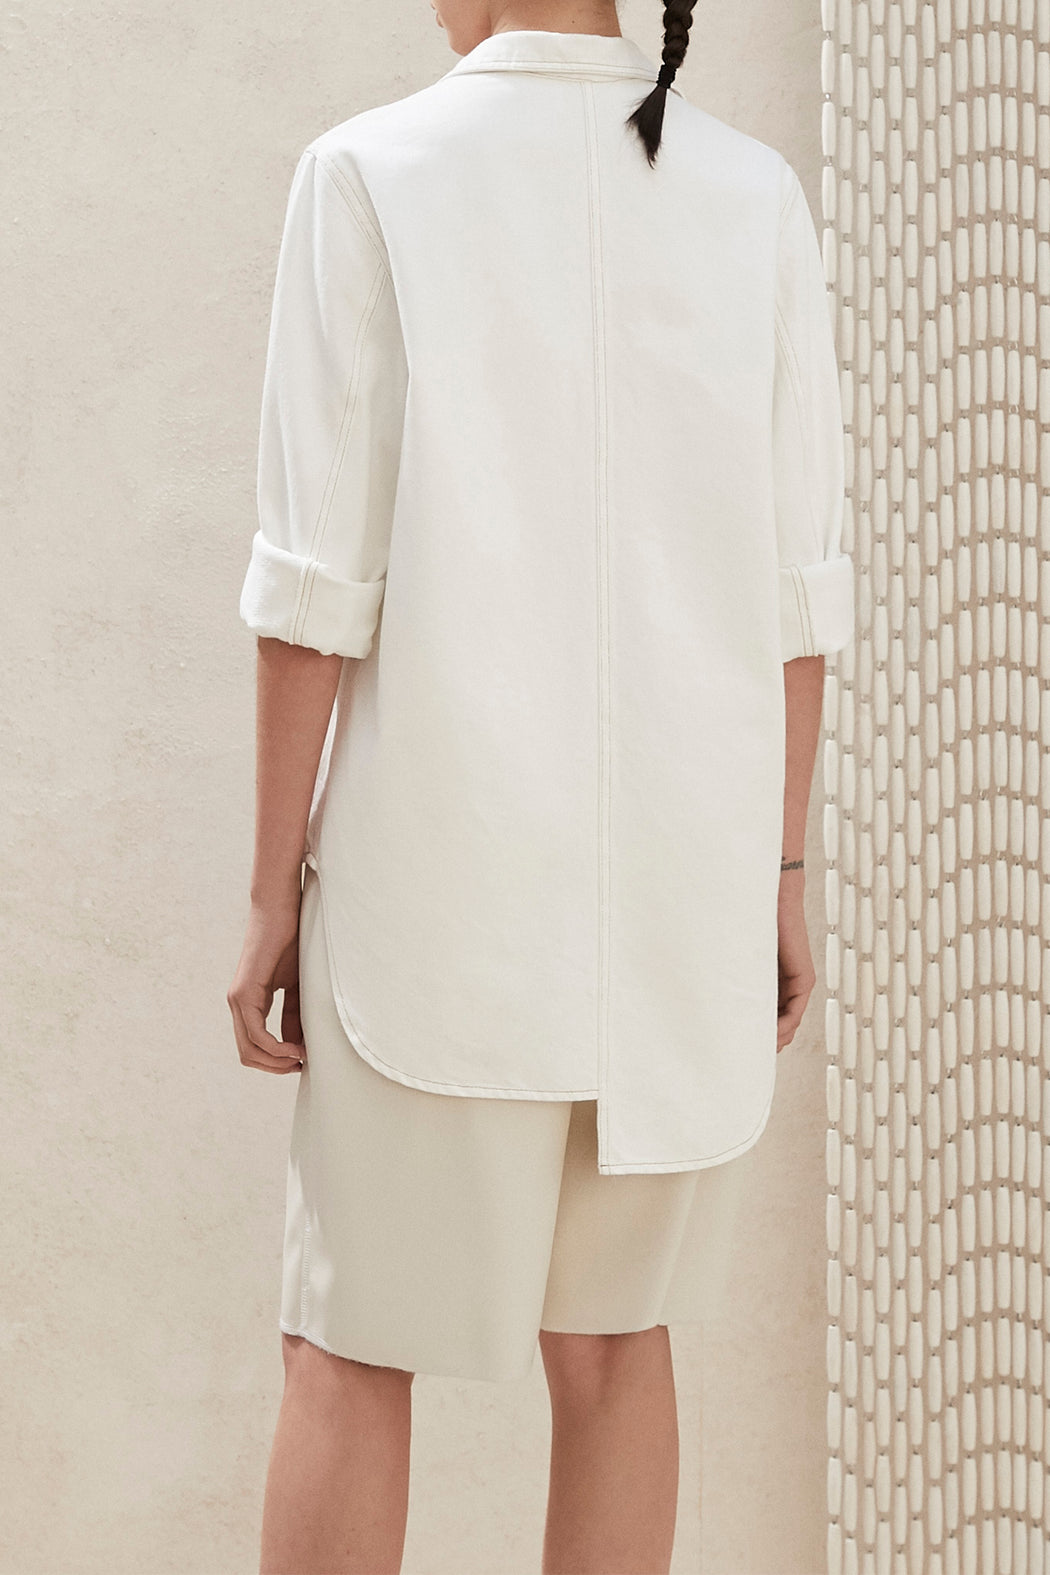 Nanushka Soli Oversized Shirt in White